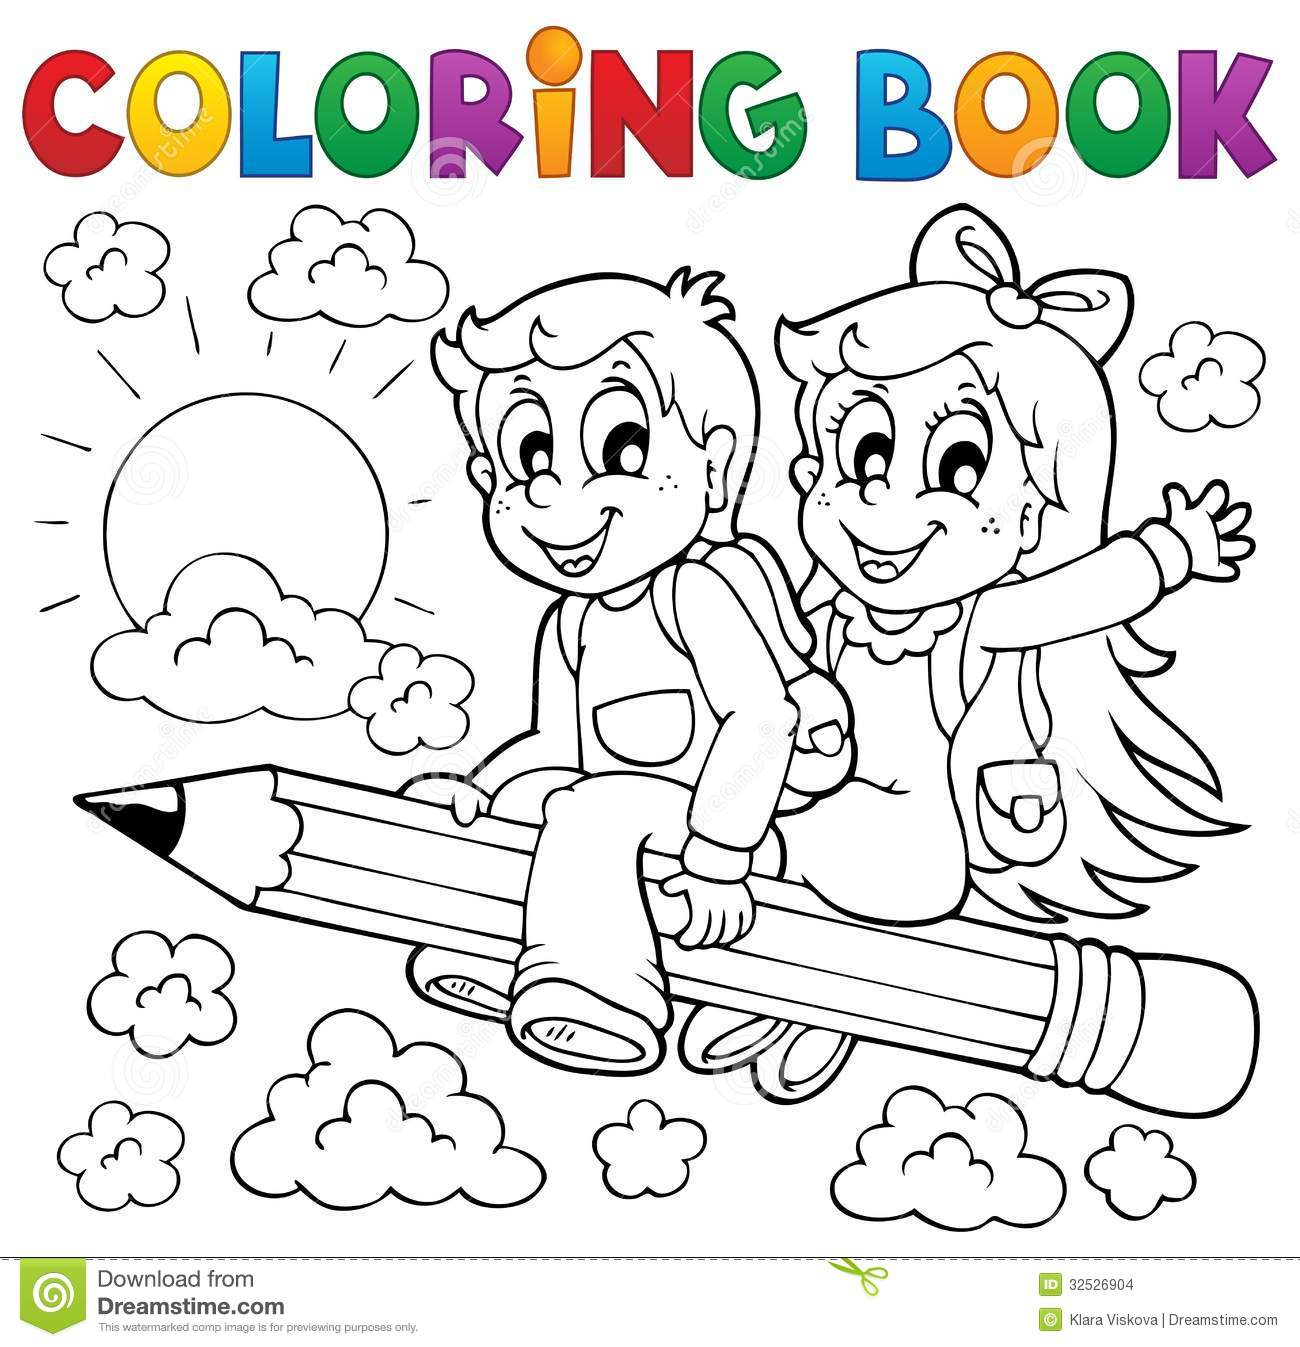 Coloring book school - Coloring Book Pupil Theme 3 Stock Images